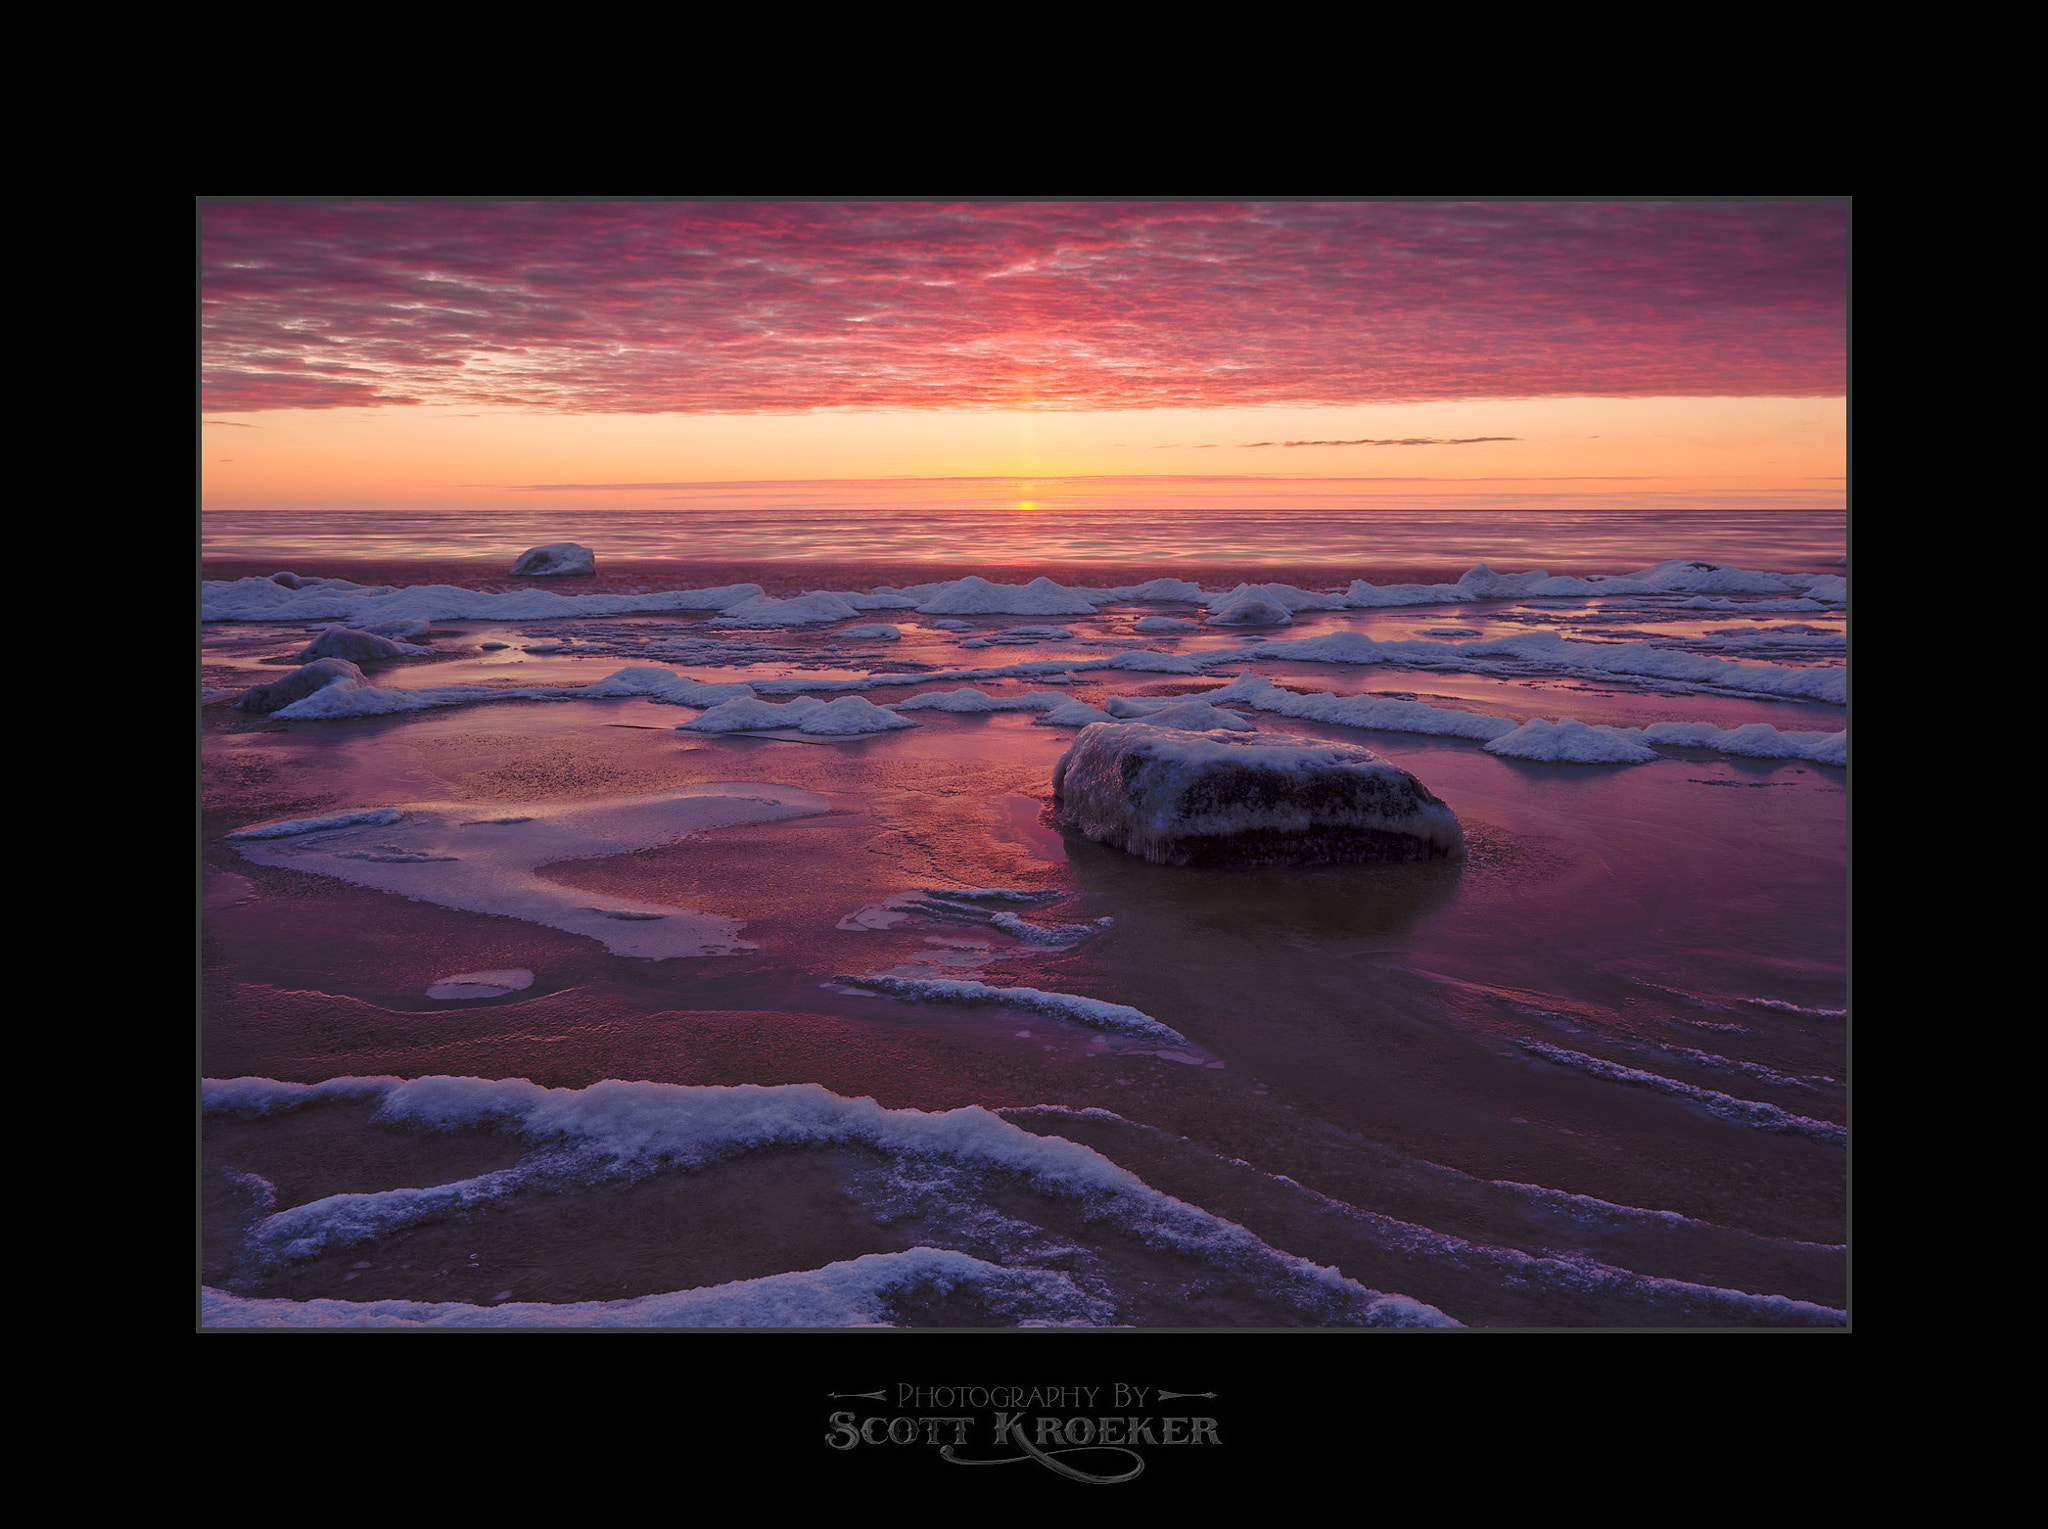 Photograph Sunset on Ice by Scott Kroeker on 500px